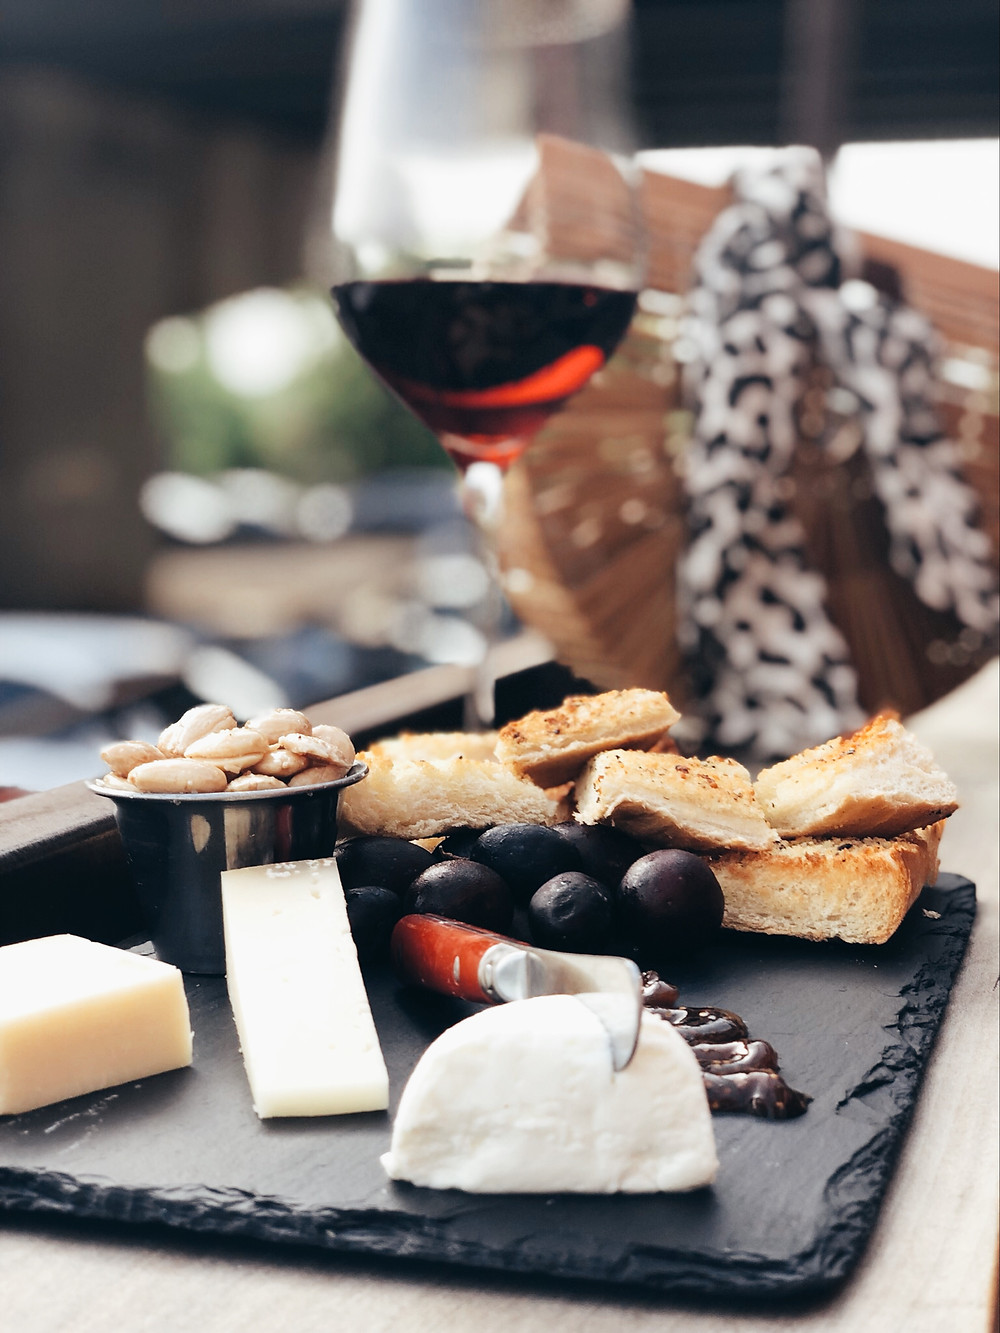 Cheese board with glass of red wine sitting in front of wooden purse with leopard scarf